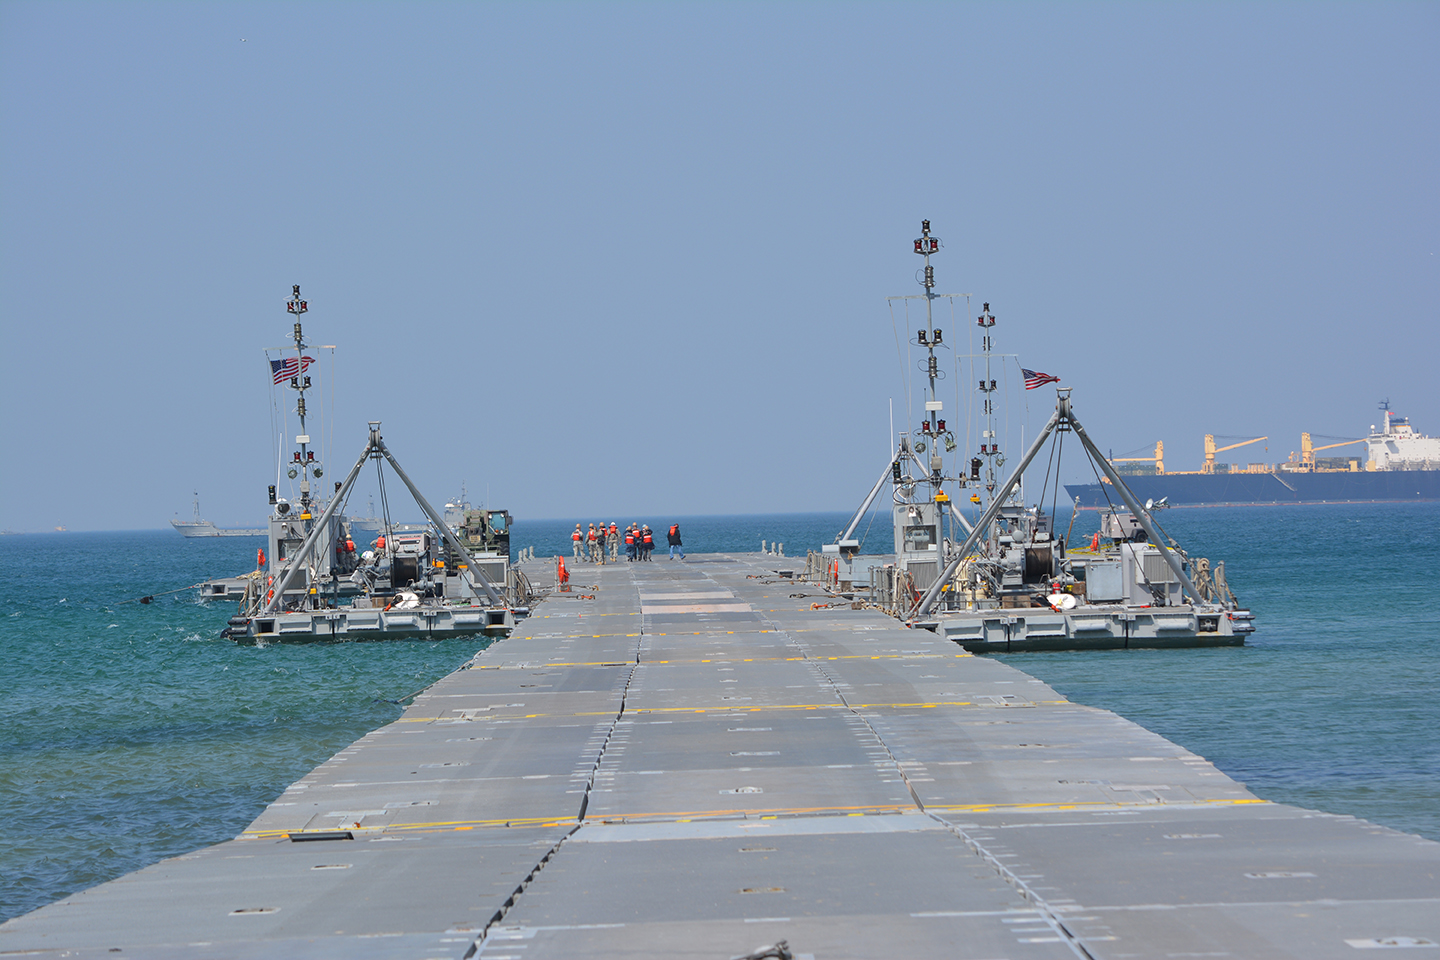 Soldiers of the 331st Transportation Company position a floating causeway with two warping tugs as part of the Combined/Joint Logistics Over the Shore (CJLOTS) 13 exercise in Pohang, South Korea. (Photos by CW4 Rick Deans, Army Field Support Battalion-Northeast Asia)